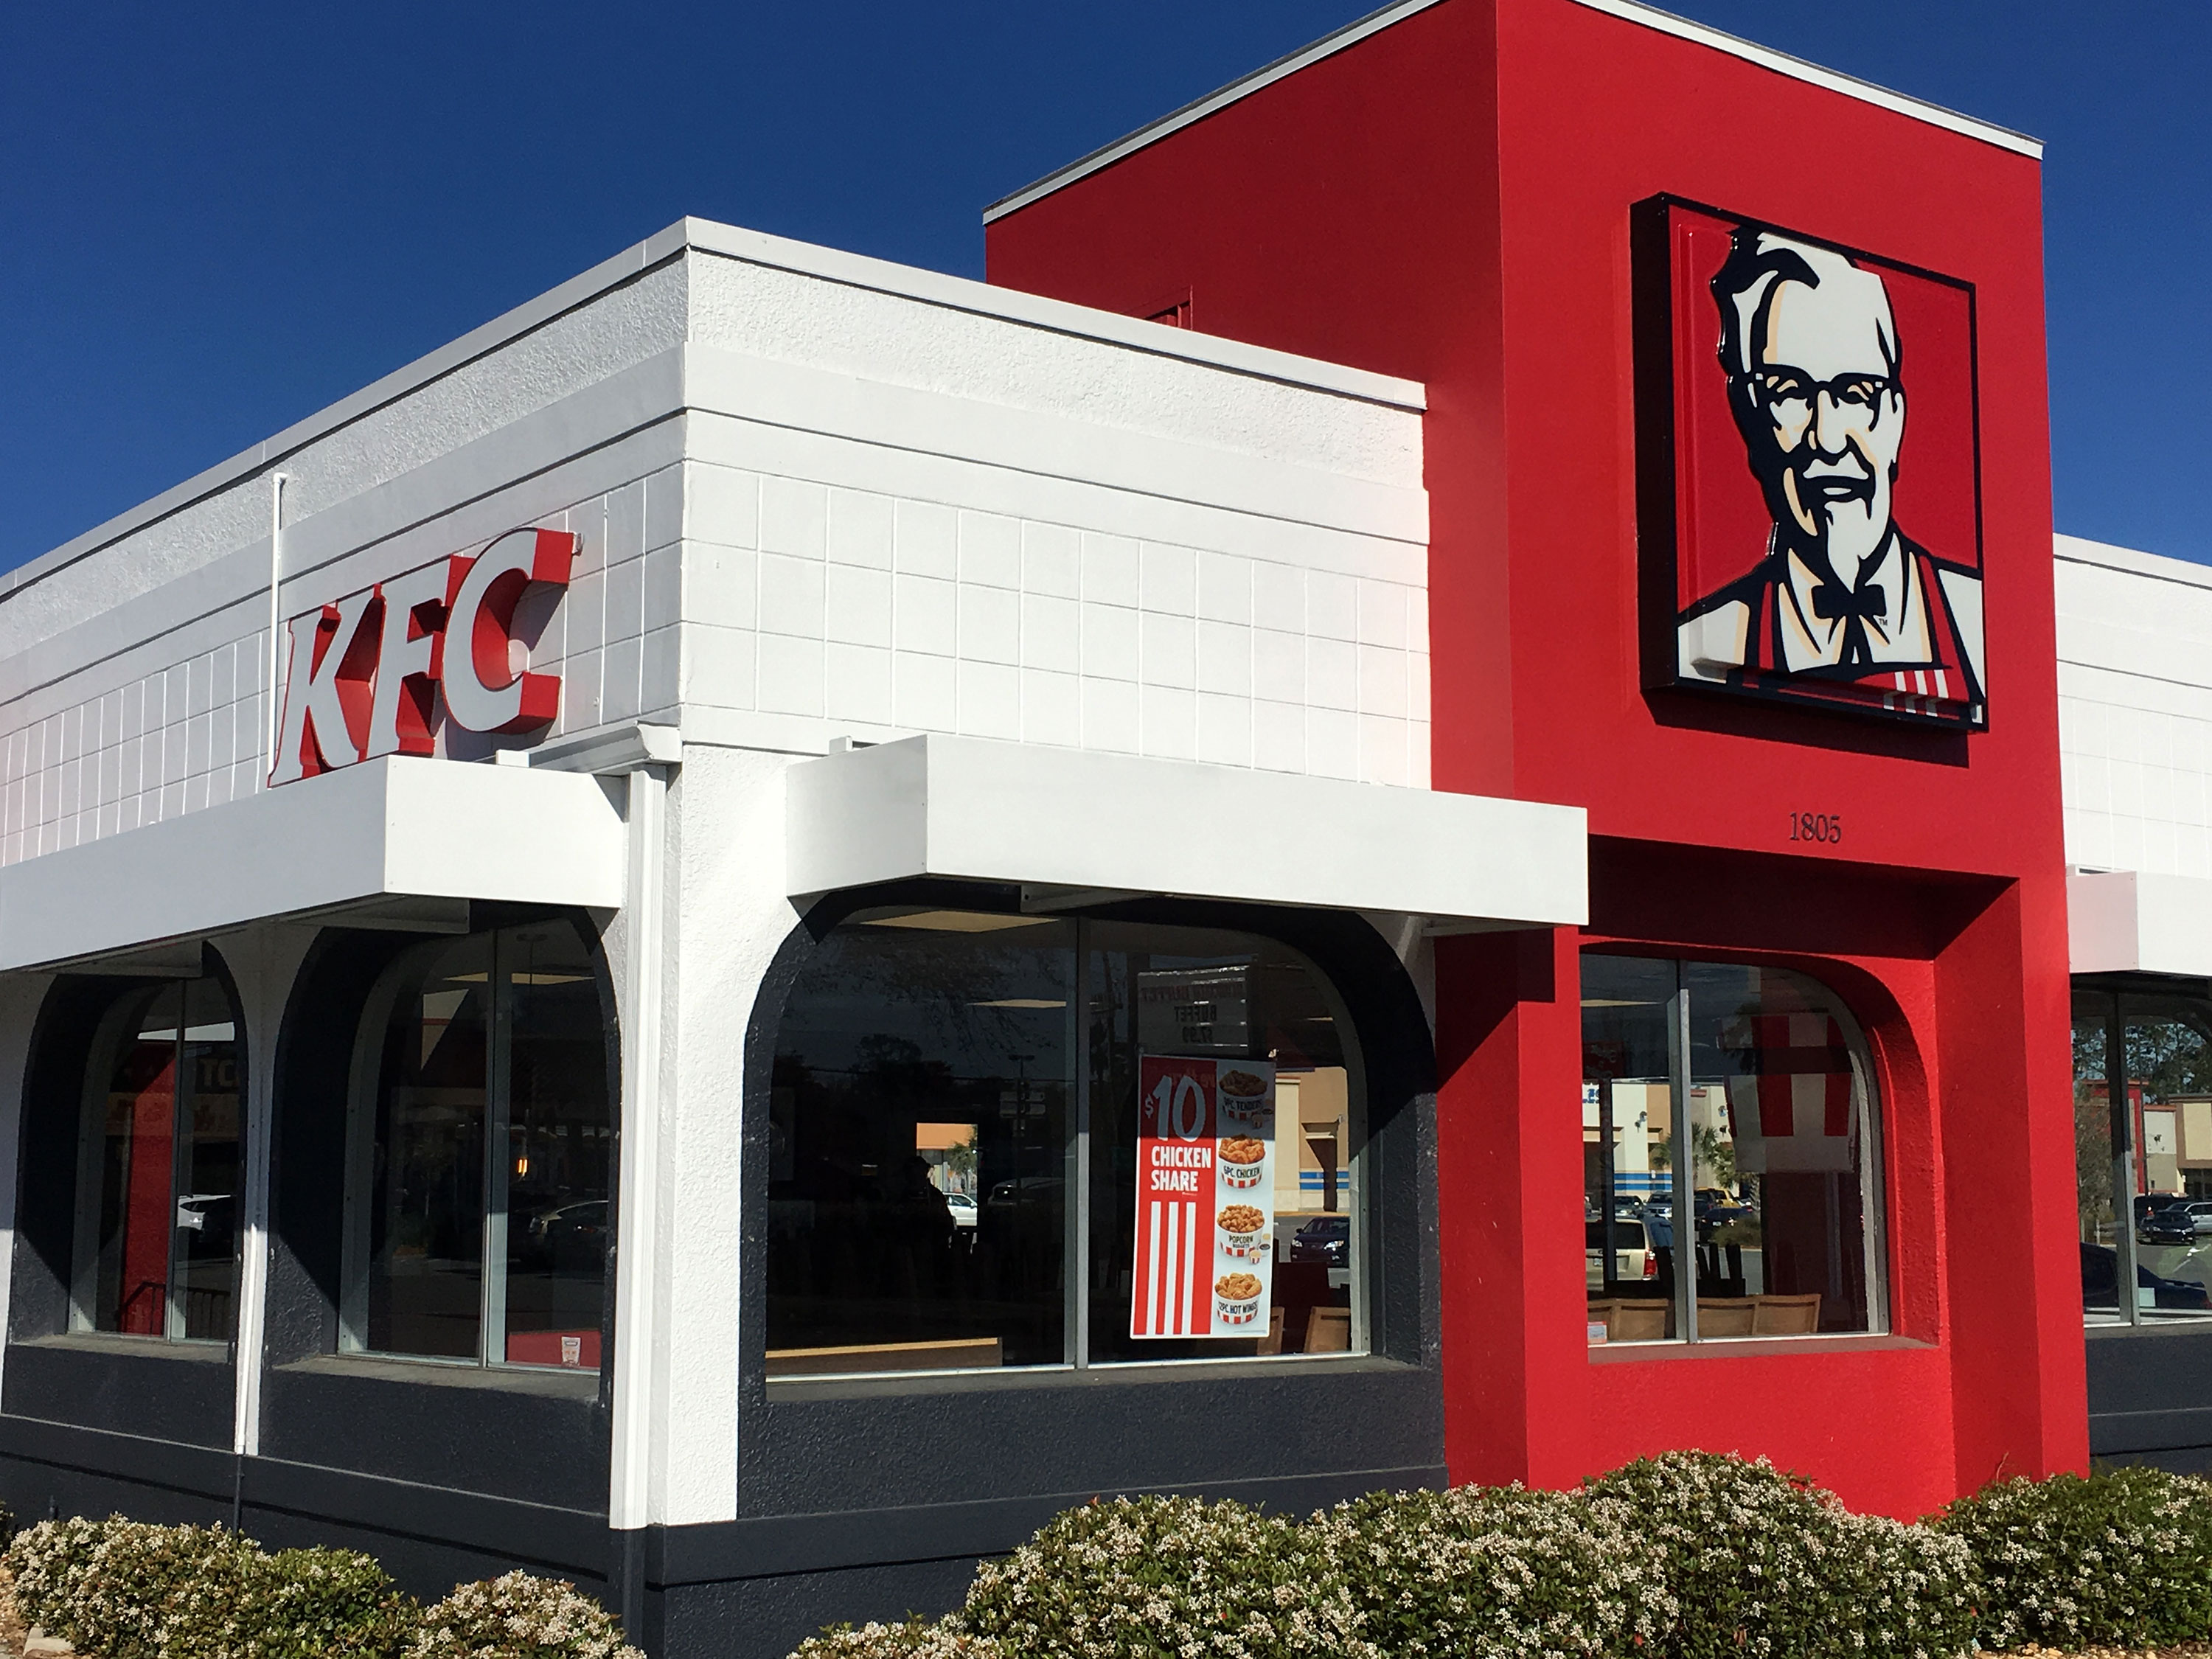 KFC restaurant in St. Augustine, Florida.